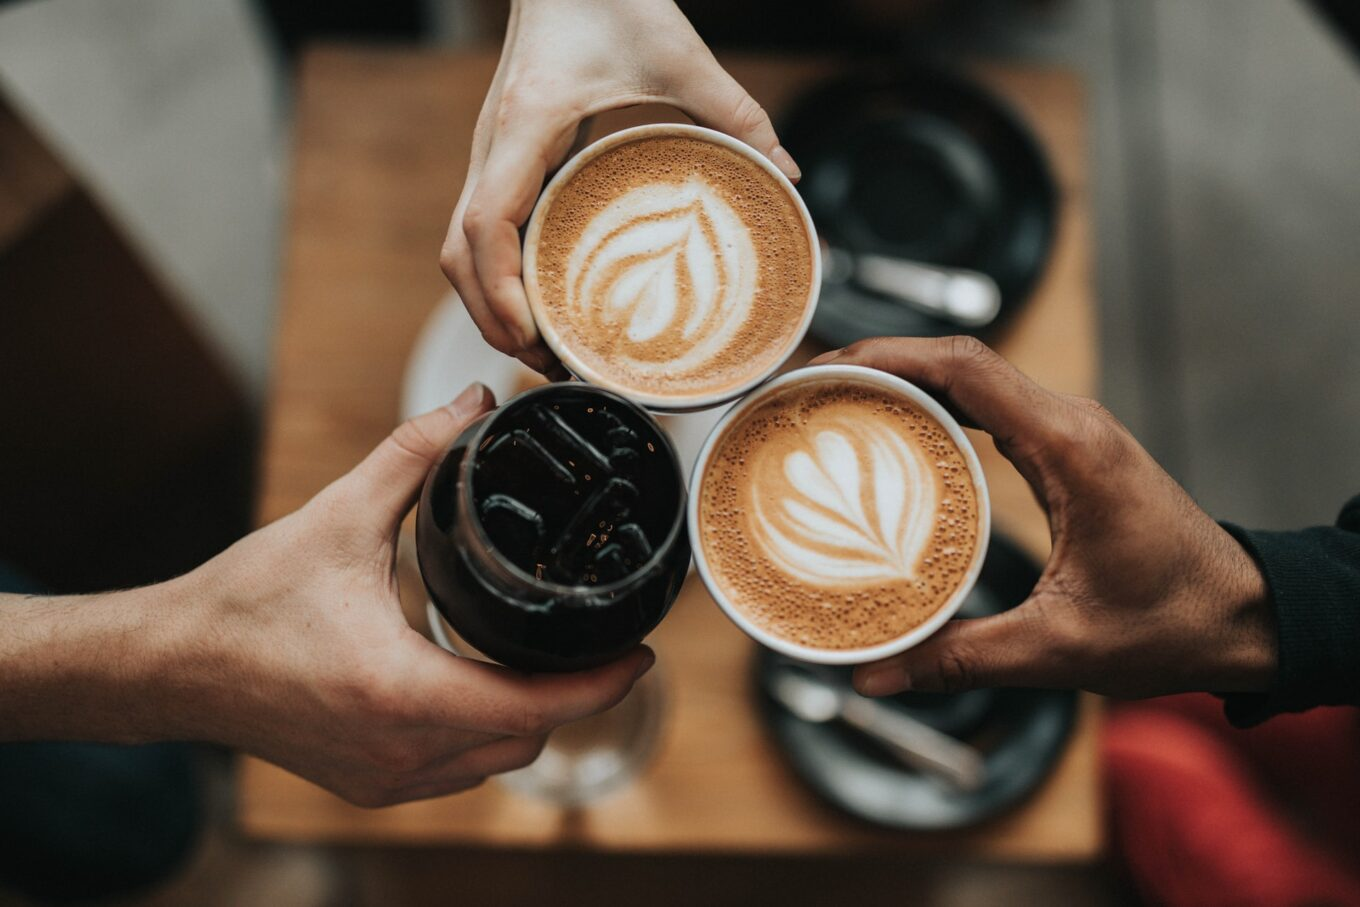 A guide to becoming an ethical coffee drinker